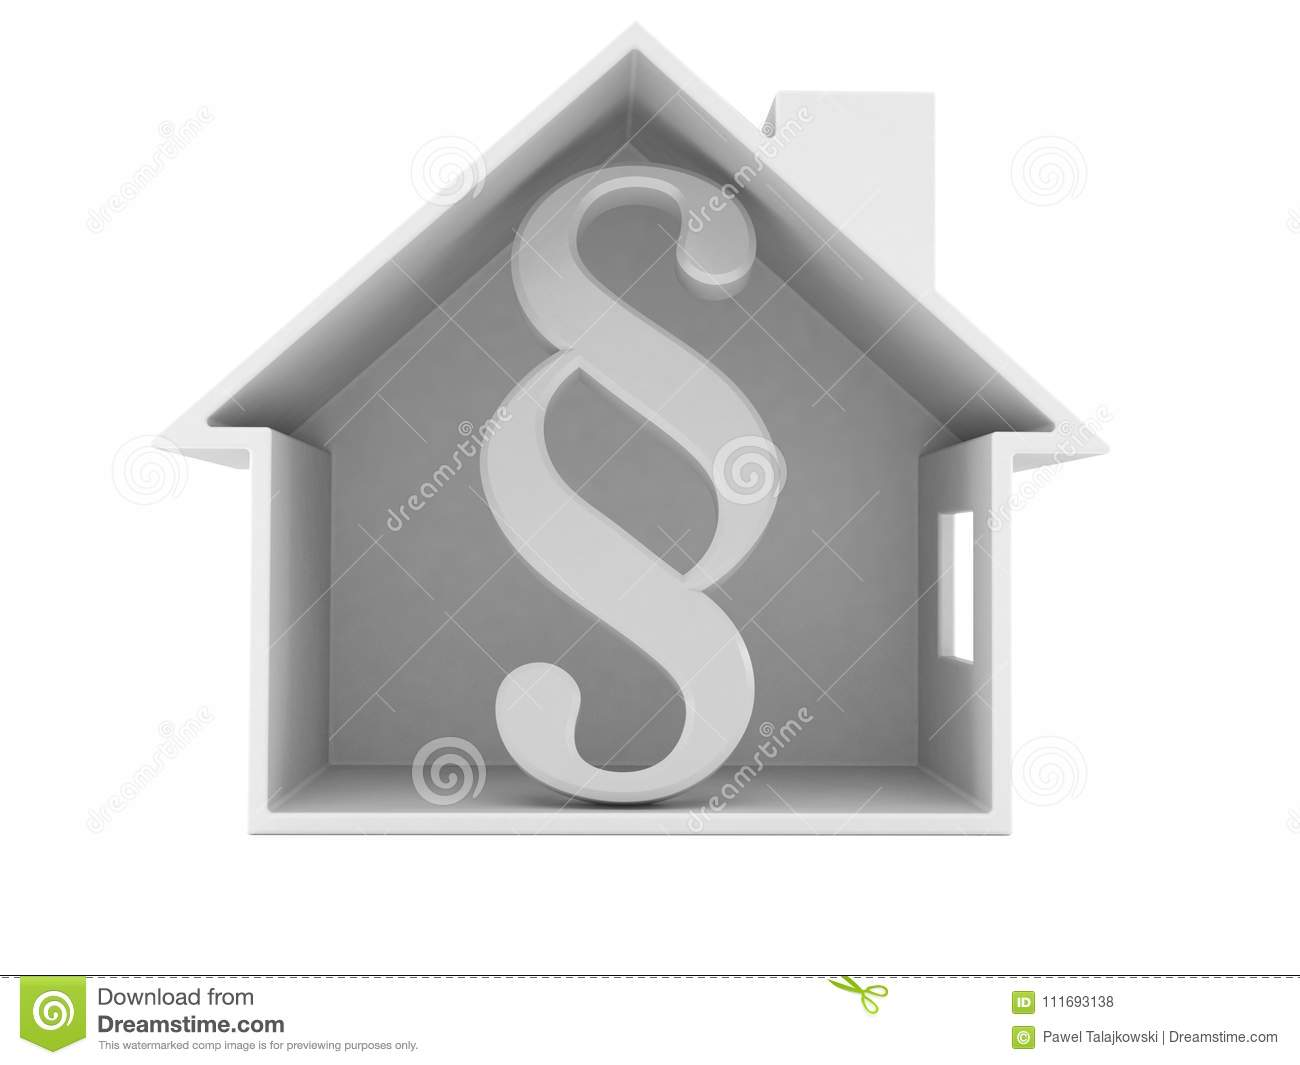 Paragraph symbol inside house cross section stock illustration paragraph symbol inside house cross section buycottarizona Choice Image